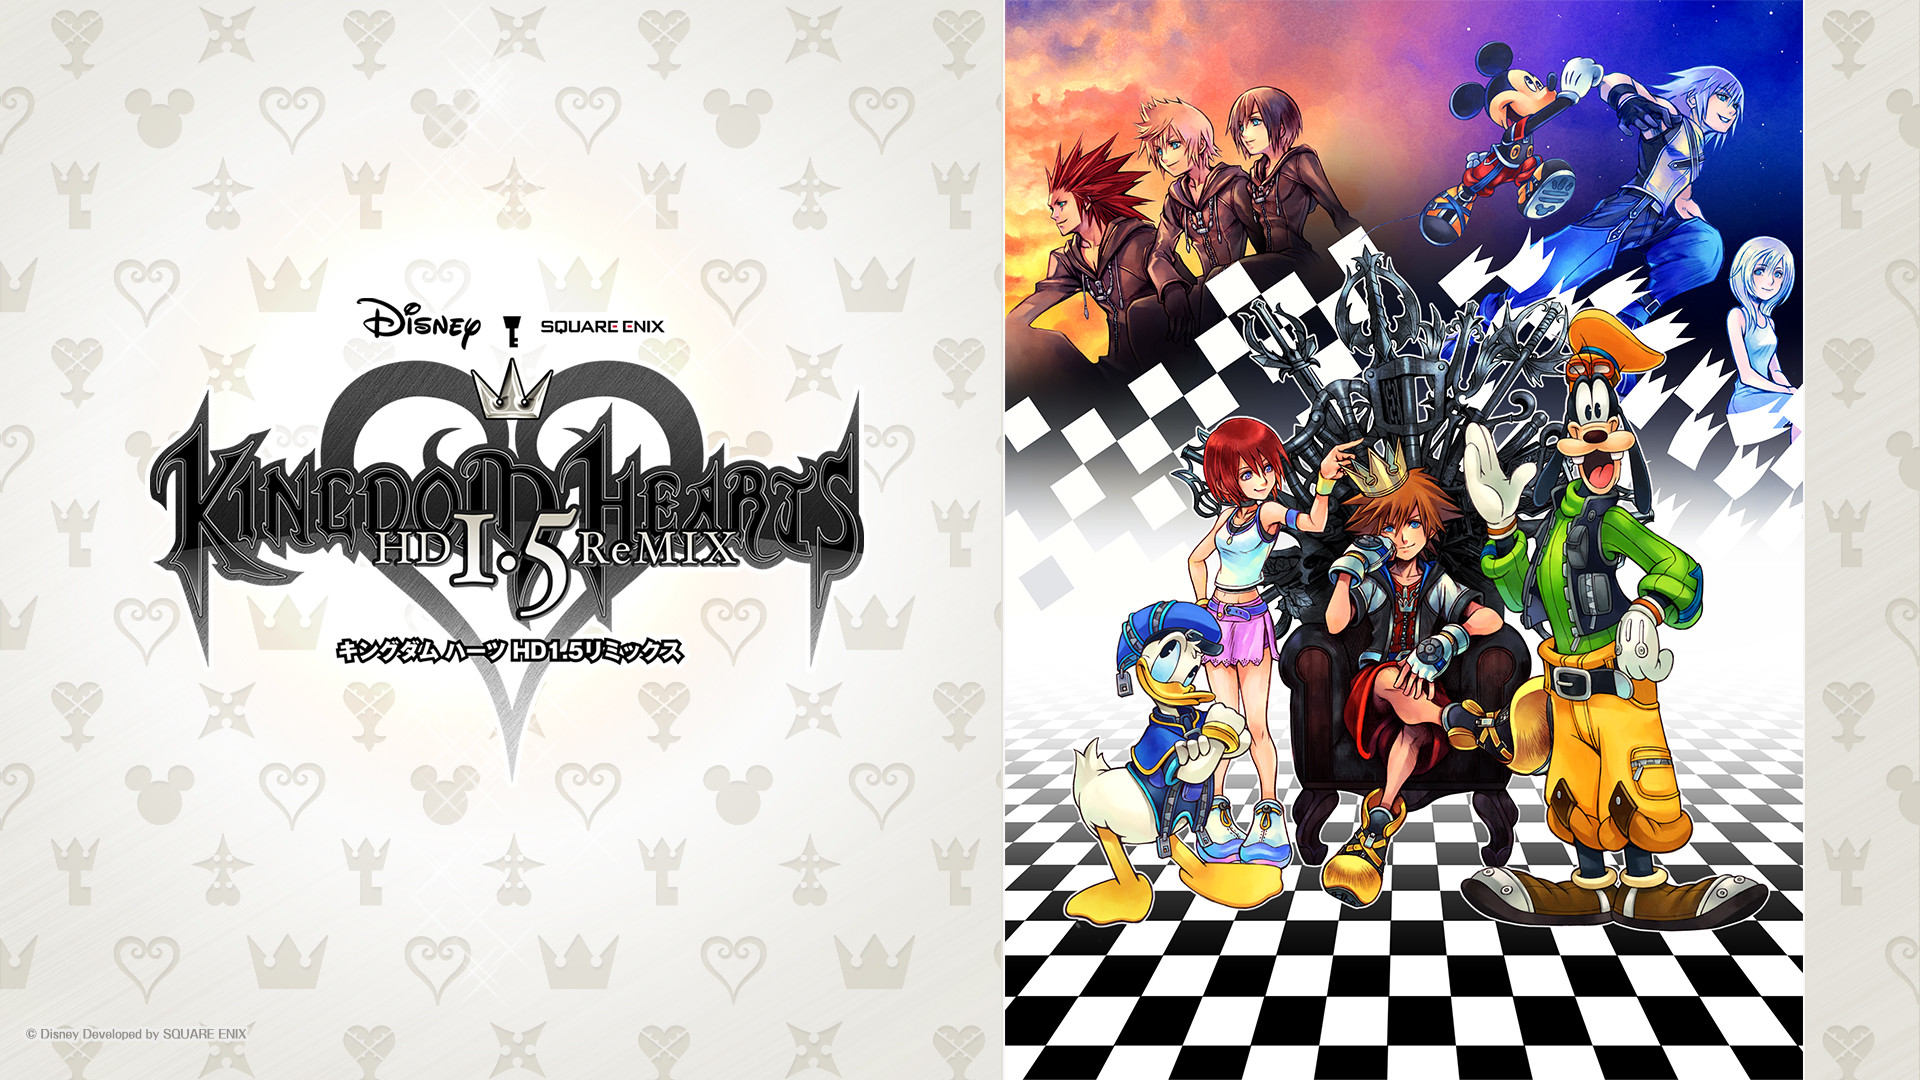 1920x1080 KINGDOM HEARTS -HD 1.5 ReMIX- Fan Campaign CM, Assorted Clips, & New  Wallpapers! - News - Kingdom Hearts Insider